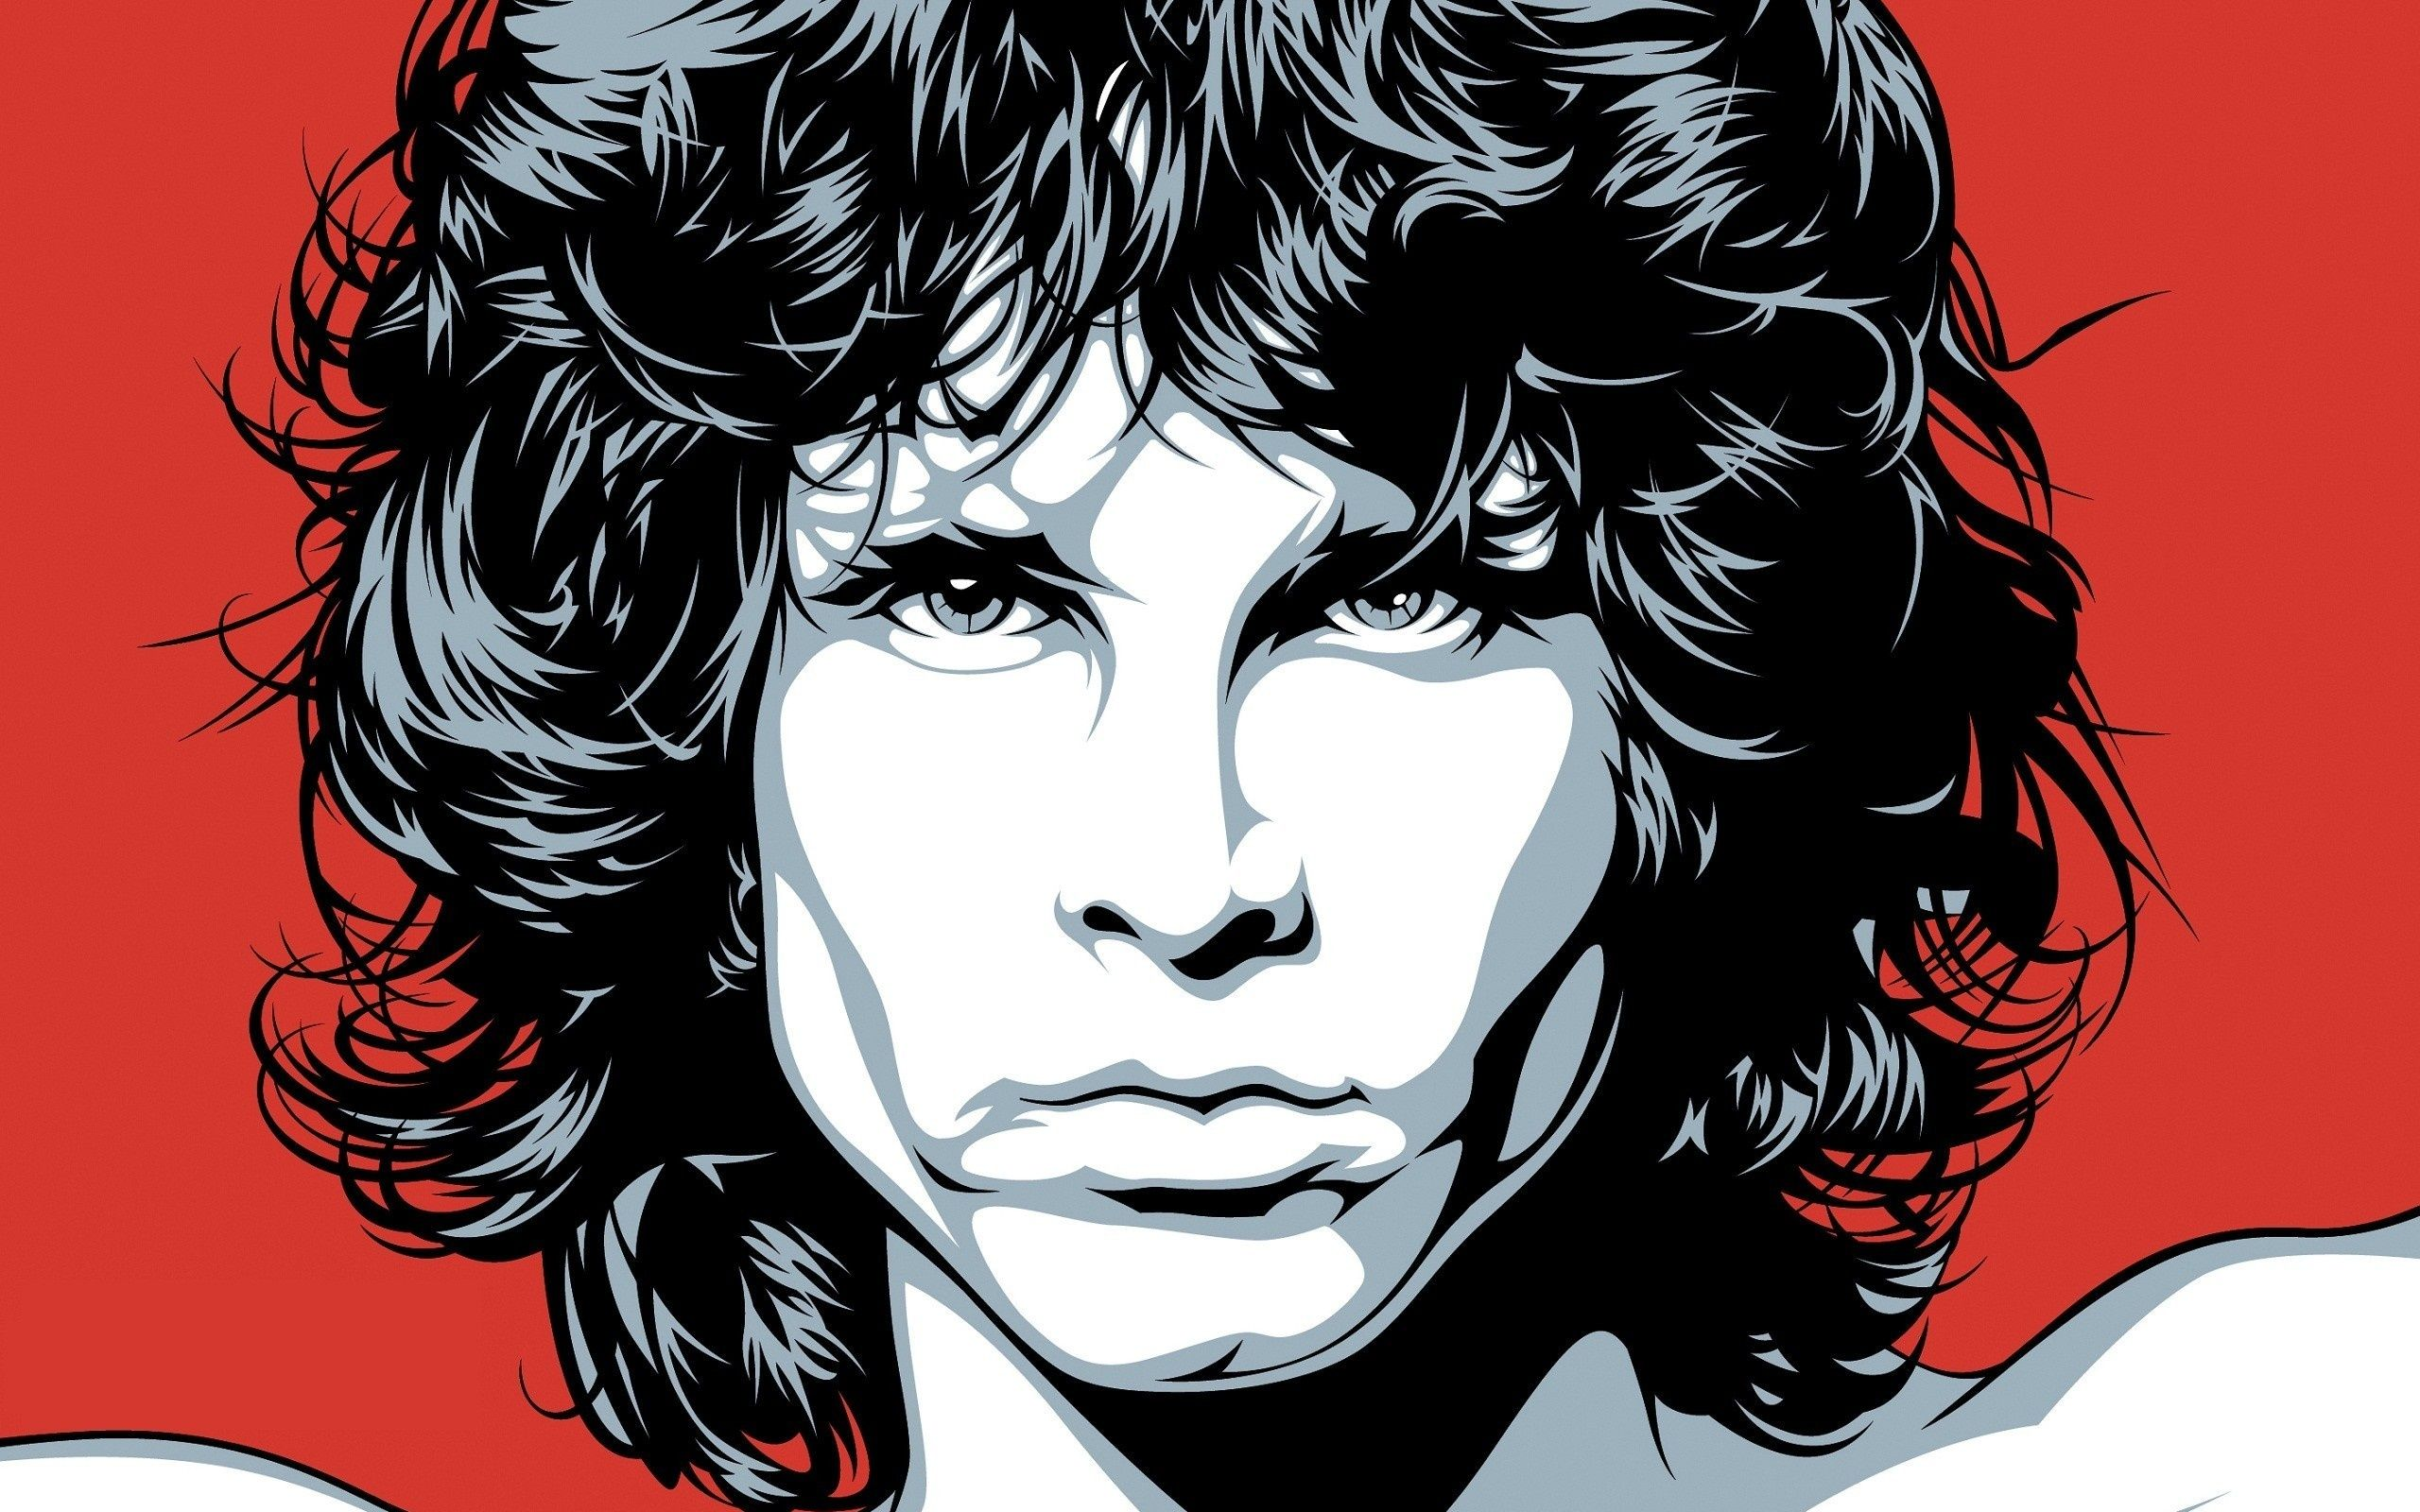 Jim Morrison The Doors Art  sc 1 st  Pinterest & Jim Morrison The Doors Art | pop-art | Pinterest | Jim morrison ...